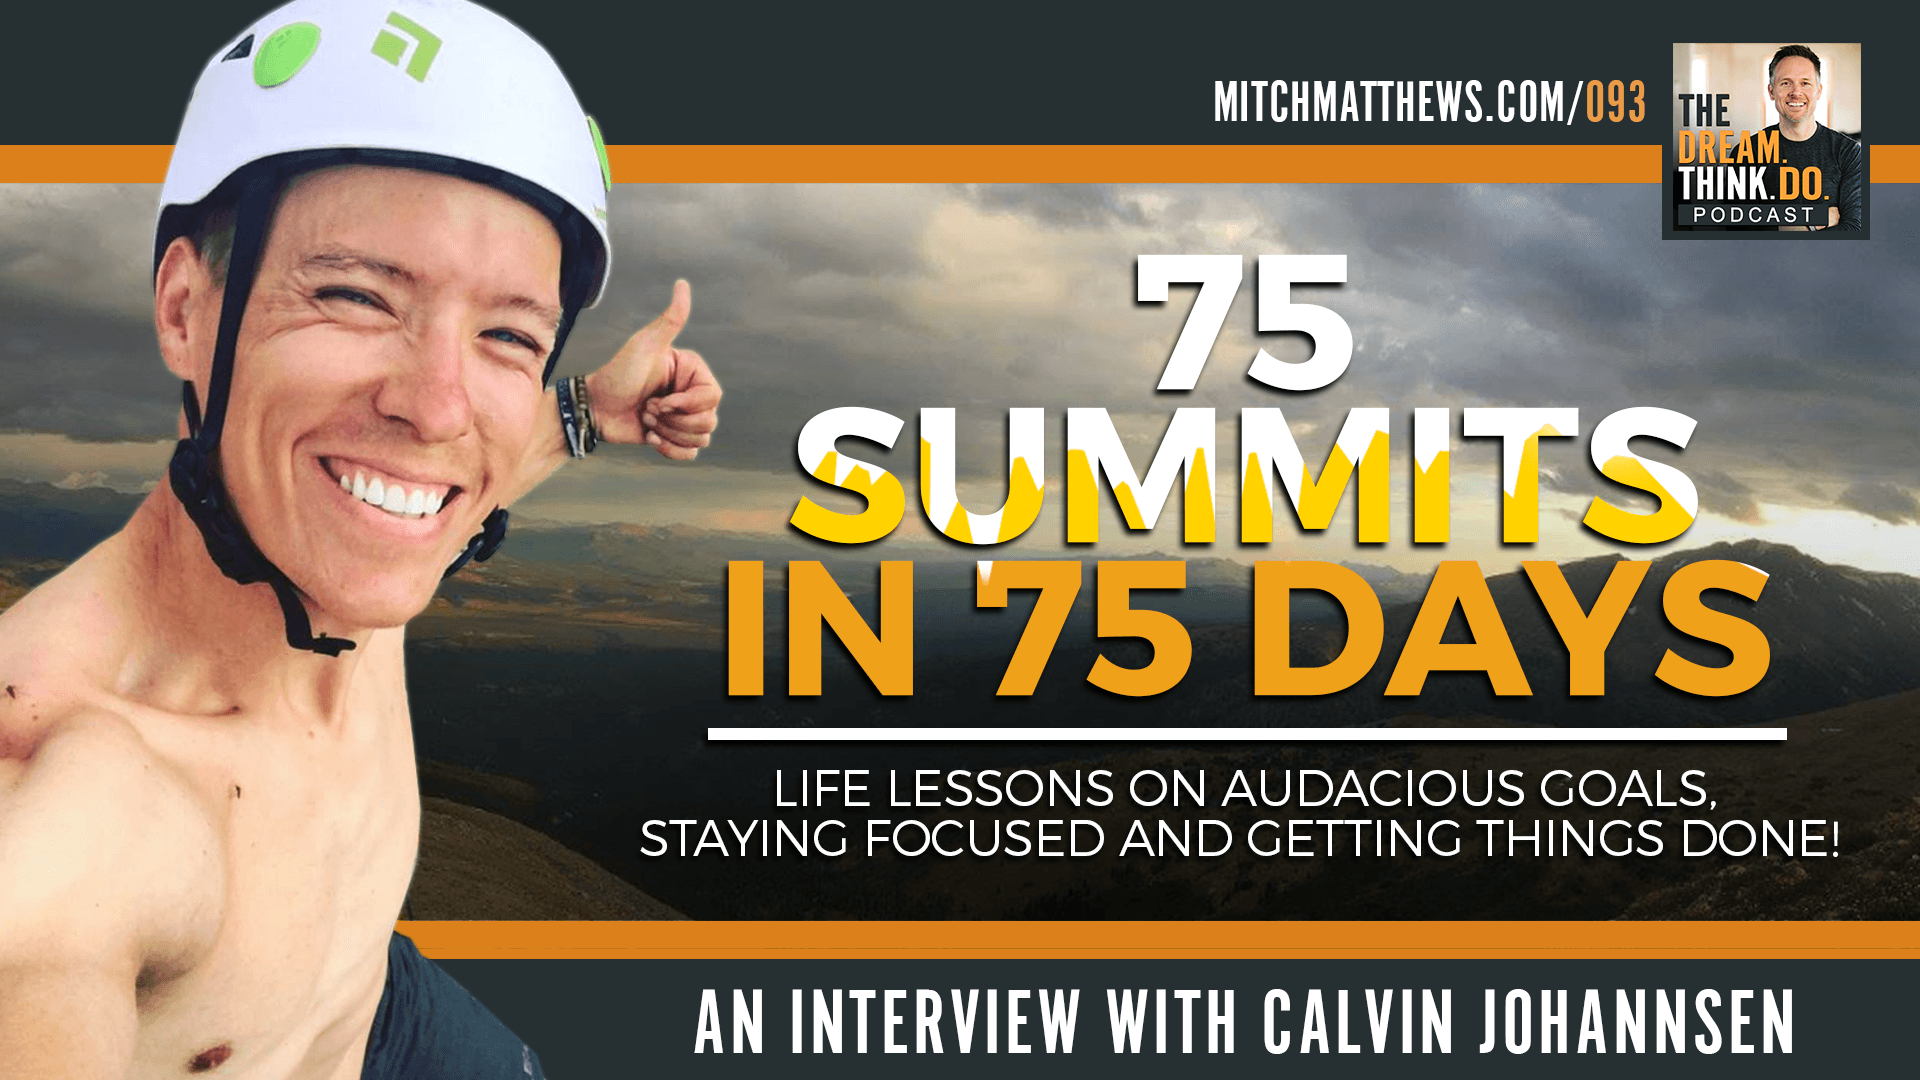 Calvin Johannsen I 75 Summits in 75 Days: Life lessons on audacious goals, staying focused and getting things done!